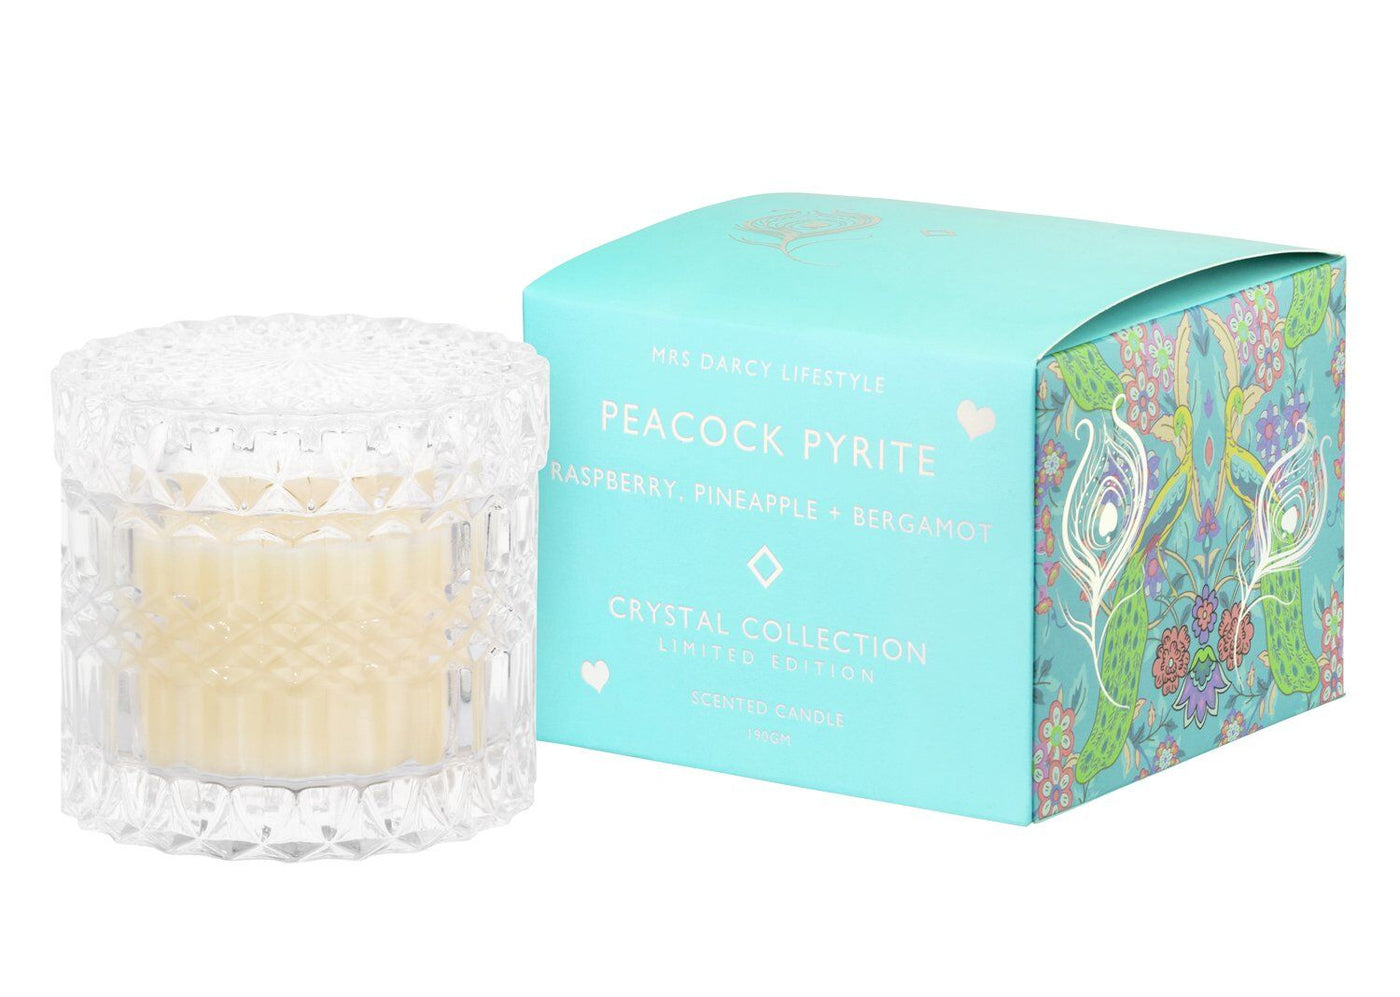 Petite Peacock Pyrite Candle - Raspberry, Pineapple + Bergamont